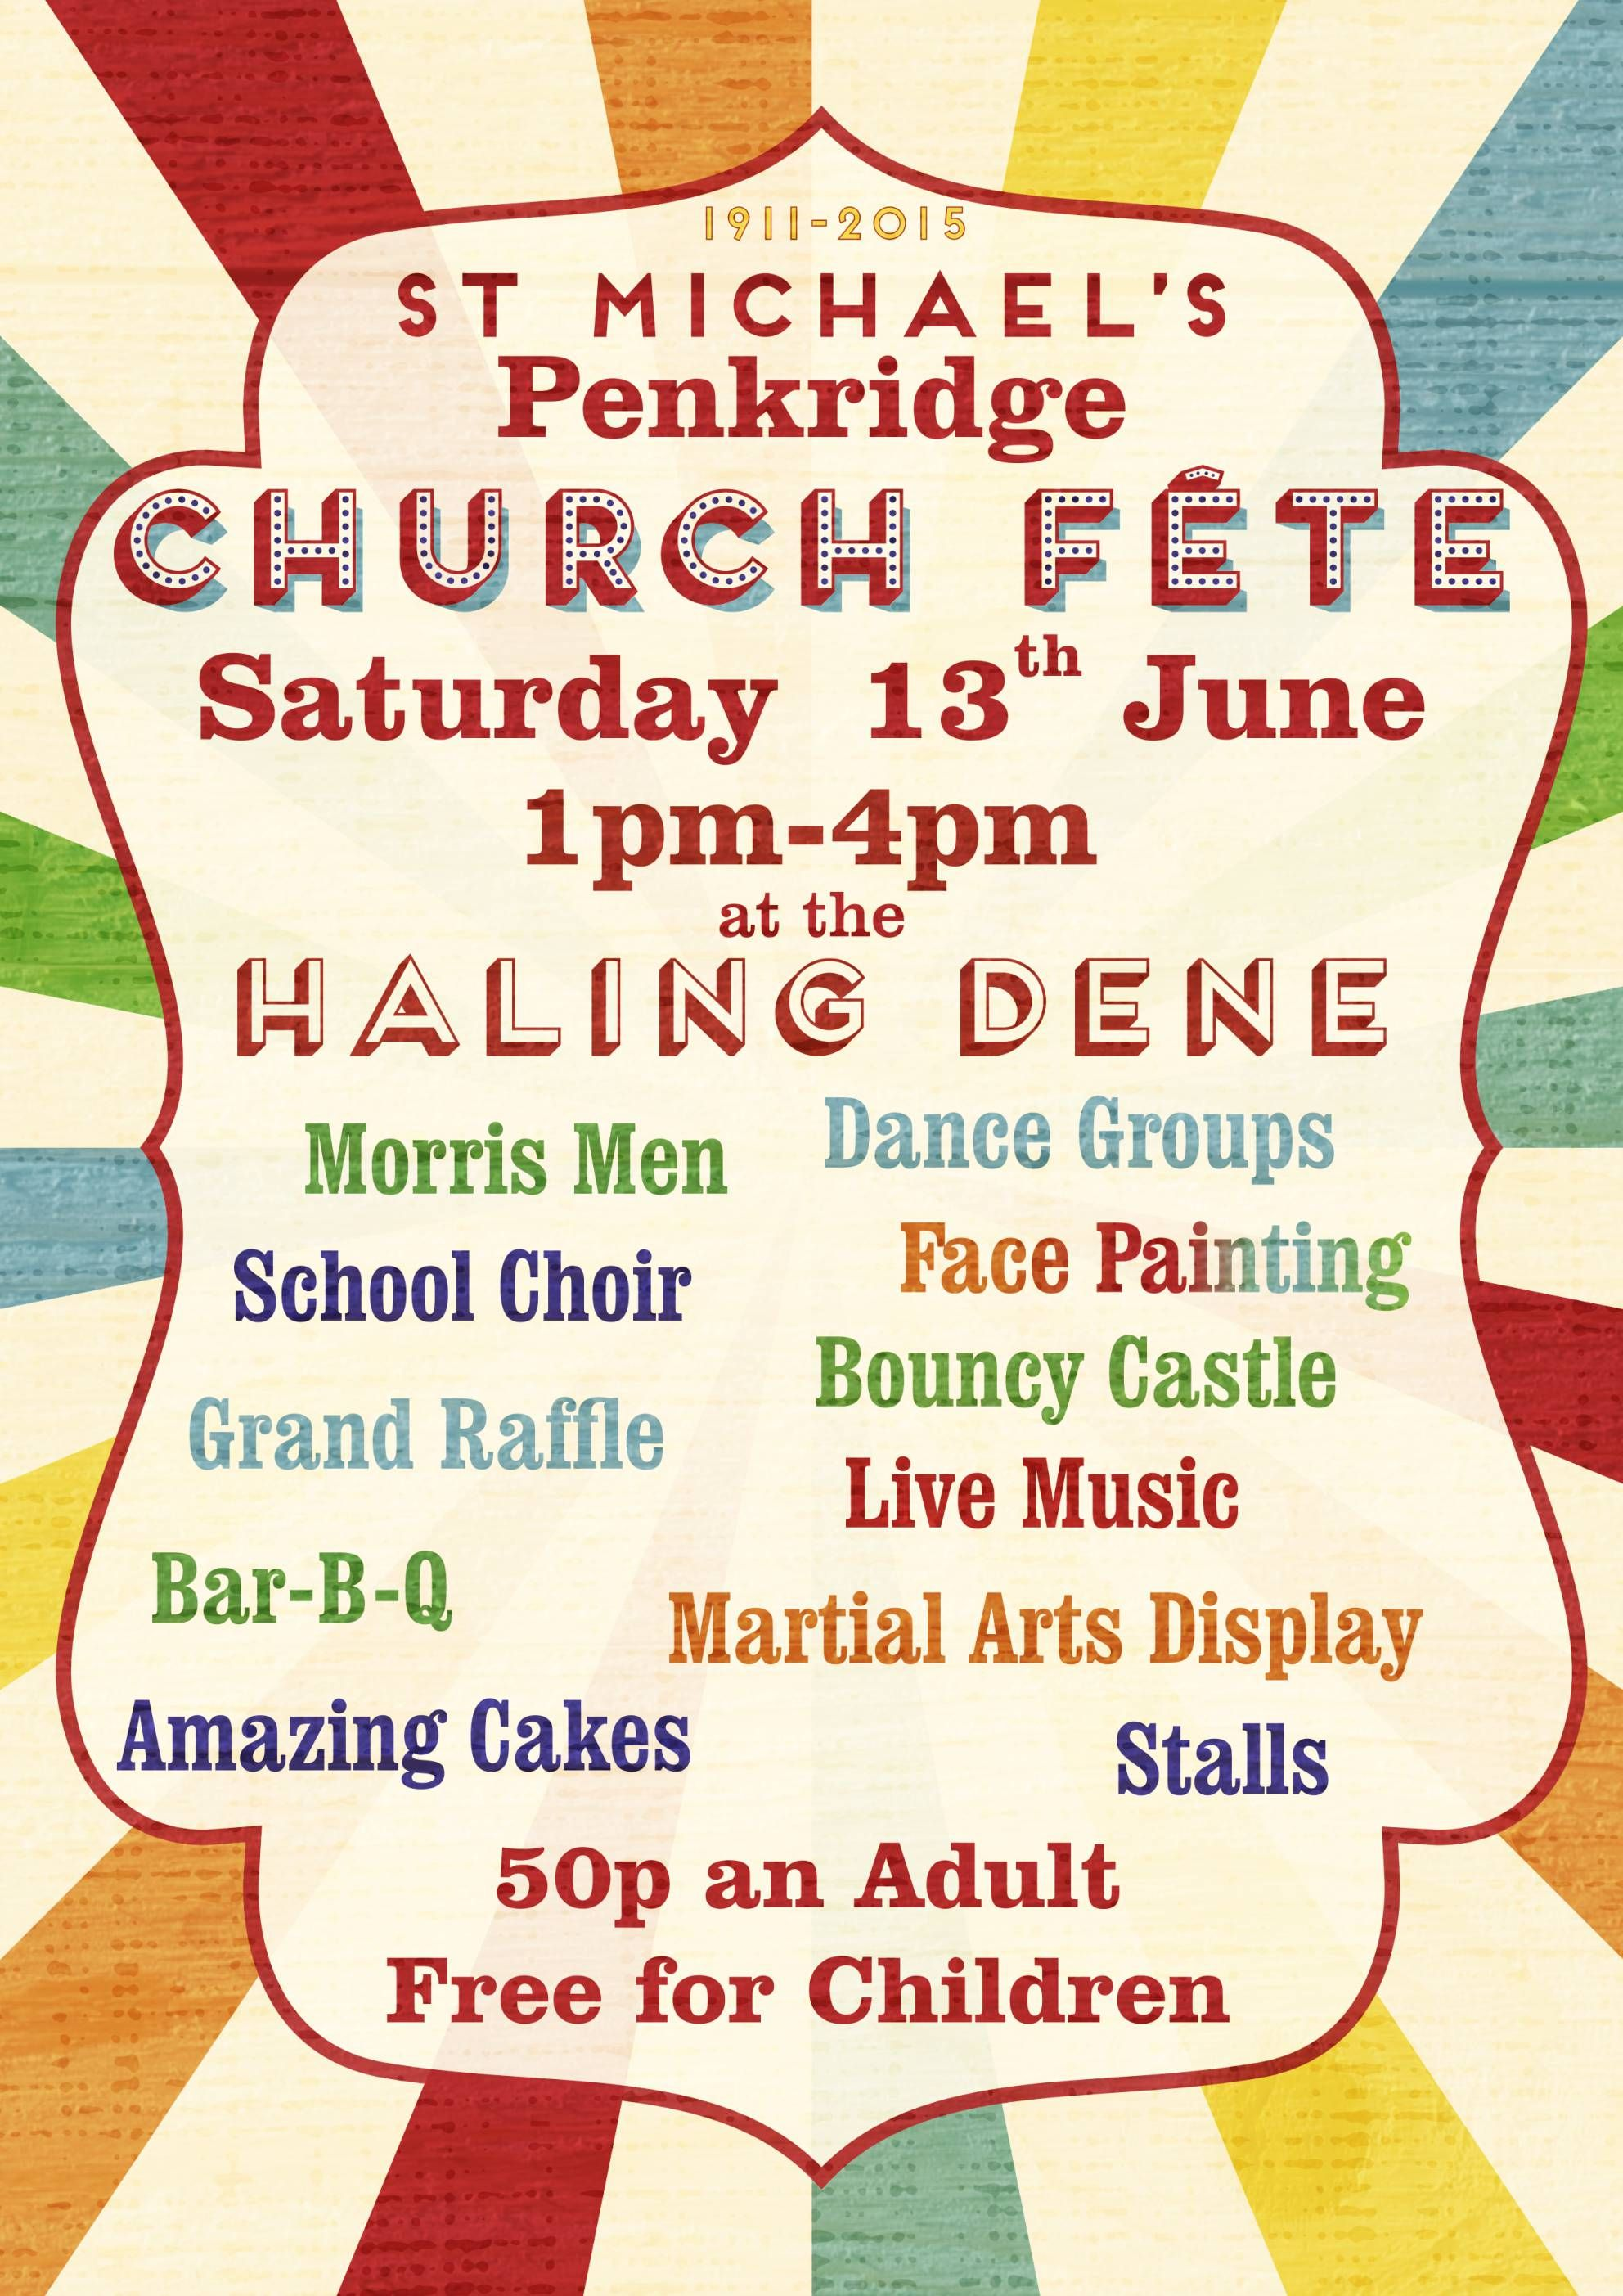 fundraiser poster for getting the tang soo tao karate kids up to penkridge church summer fete poster 2015 using frontage font by juri zaech clarendon font